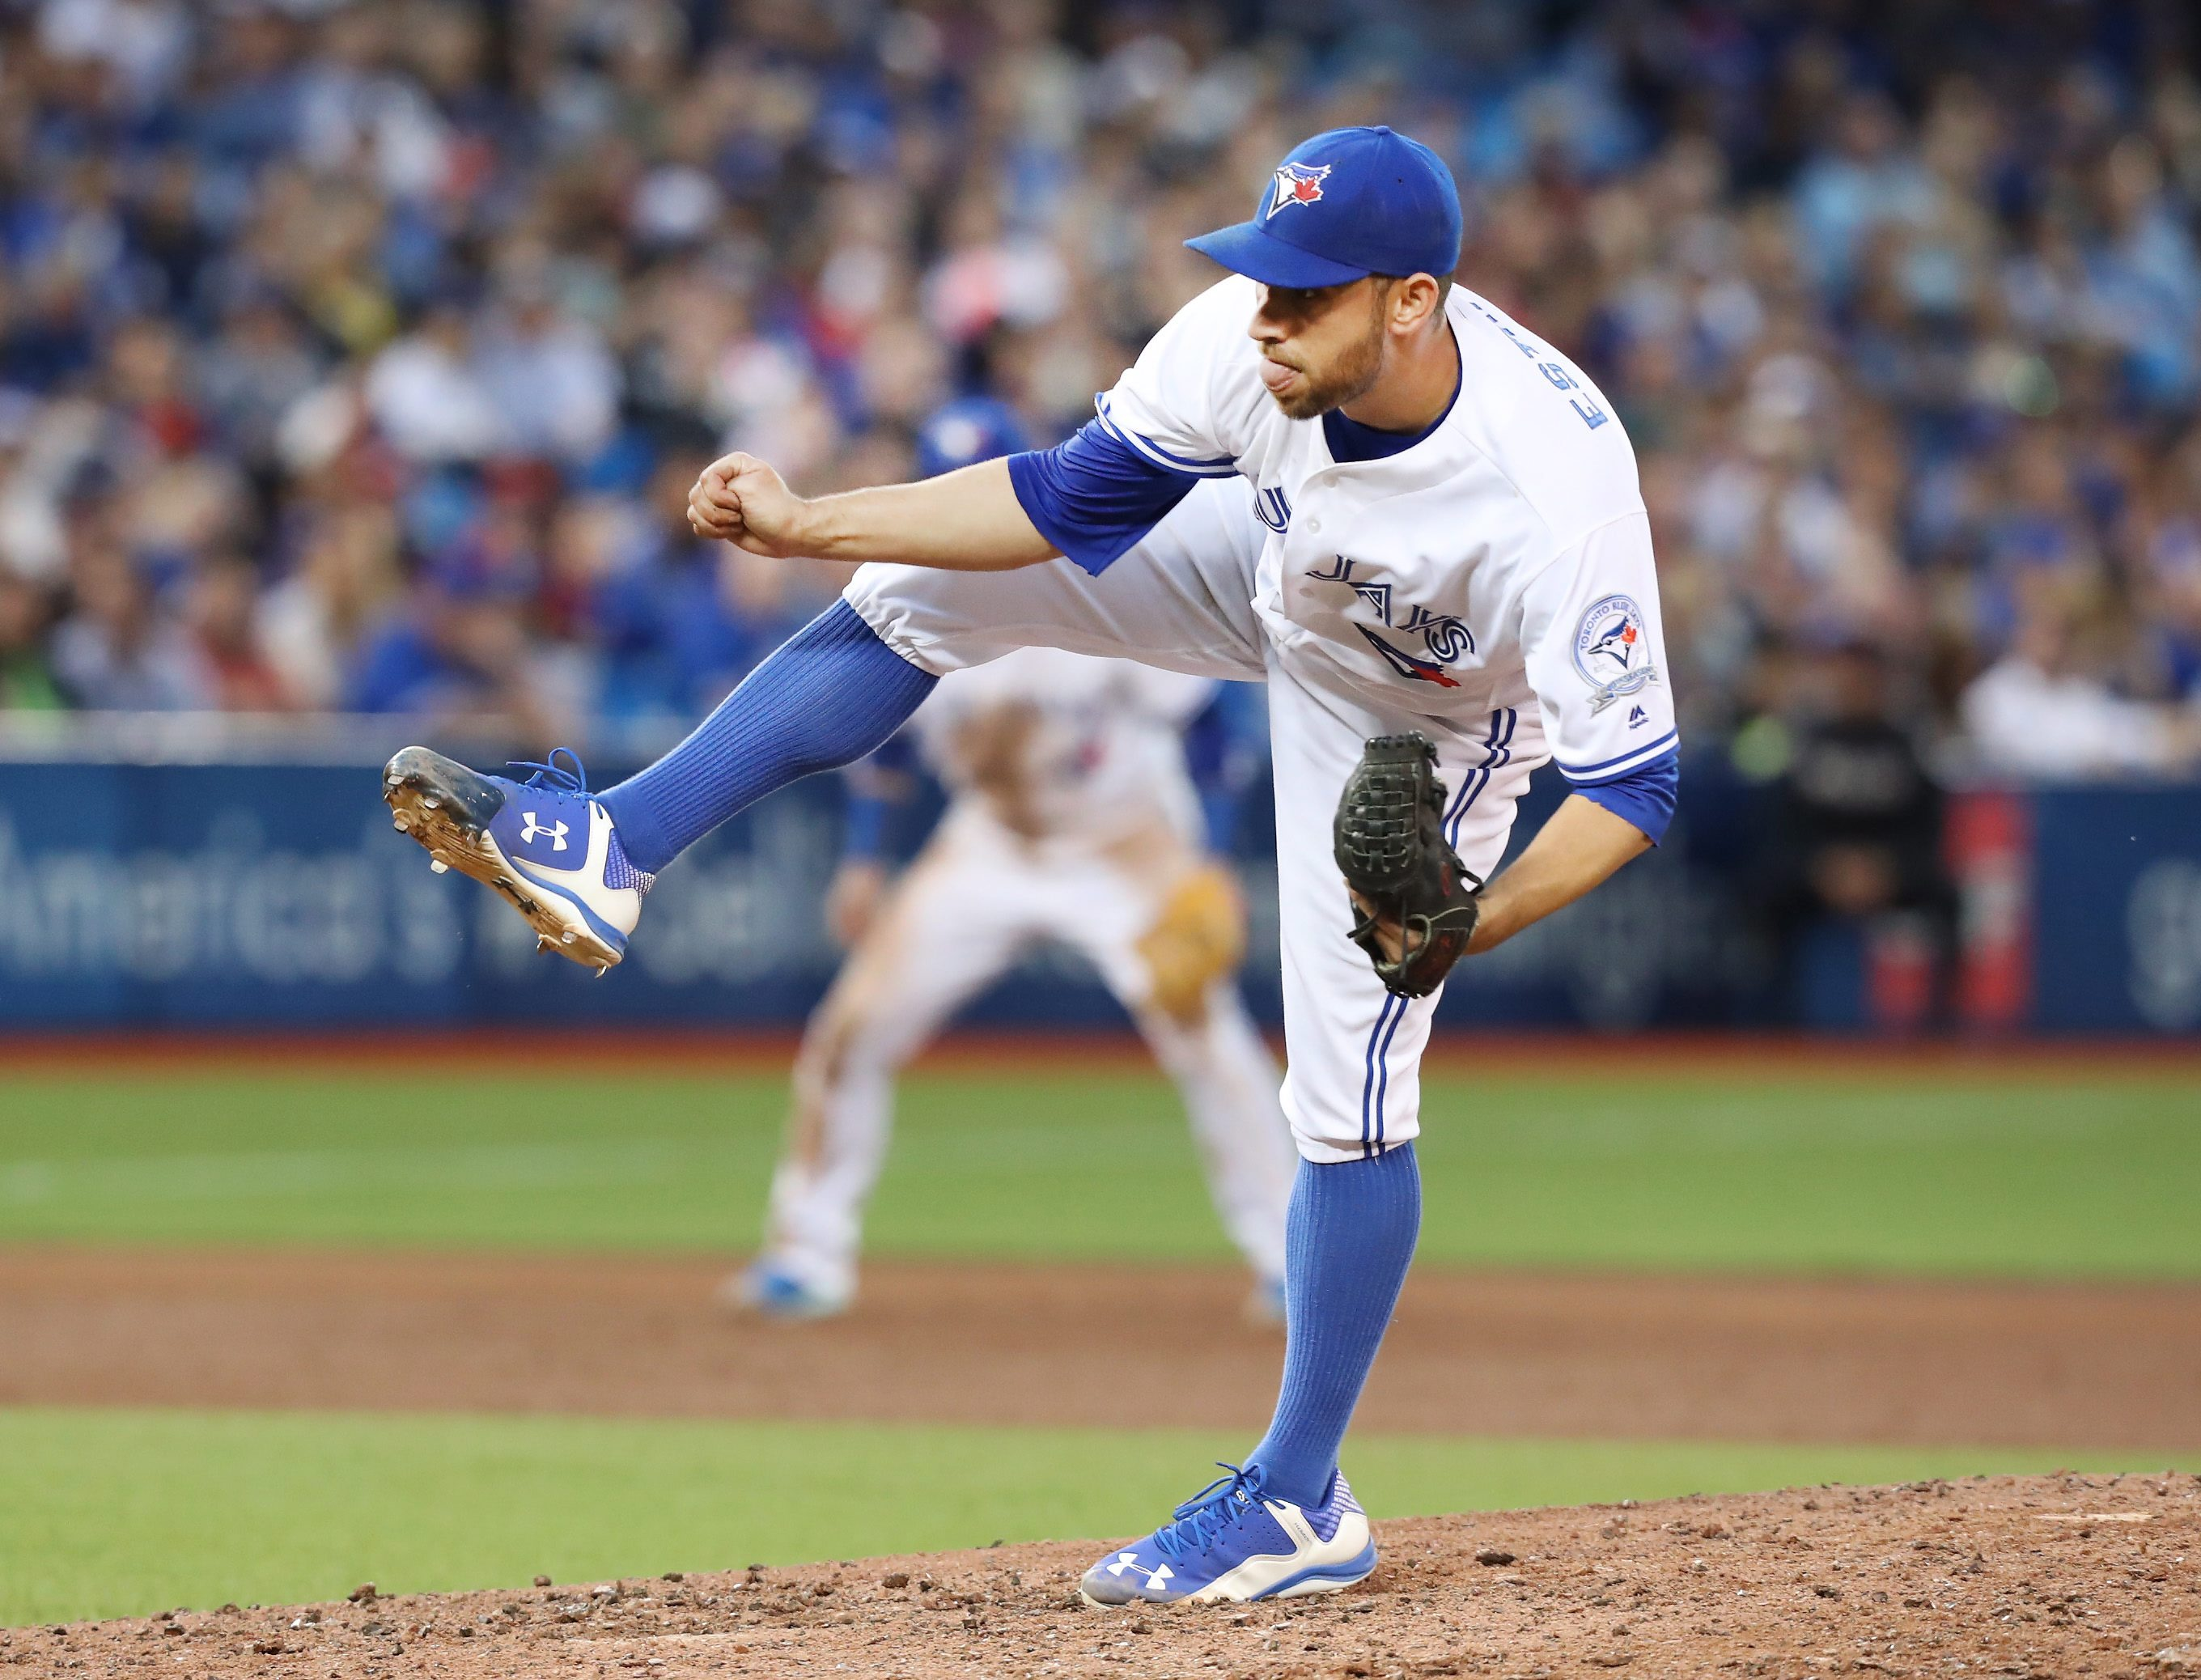 Toronto Blue Jays starting pitcher Marco Estrada throws against the Baltimore Orioles during the sixth inning of a baseball game, Friday, June 10, 2016, in Toronto. (Fred Thornhill/The Canadian Press via AP) MANDATORY CREDIT